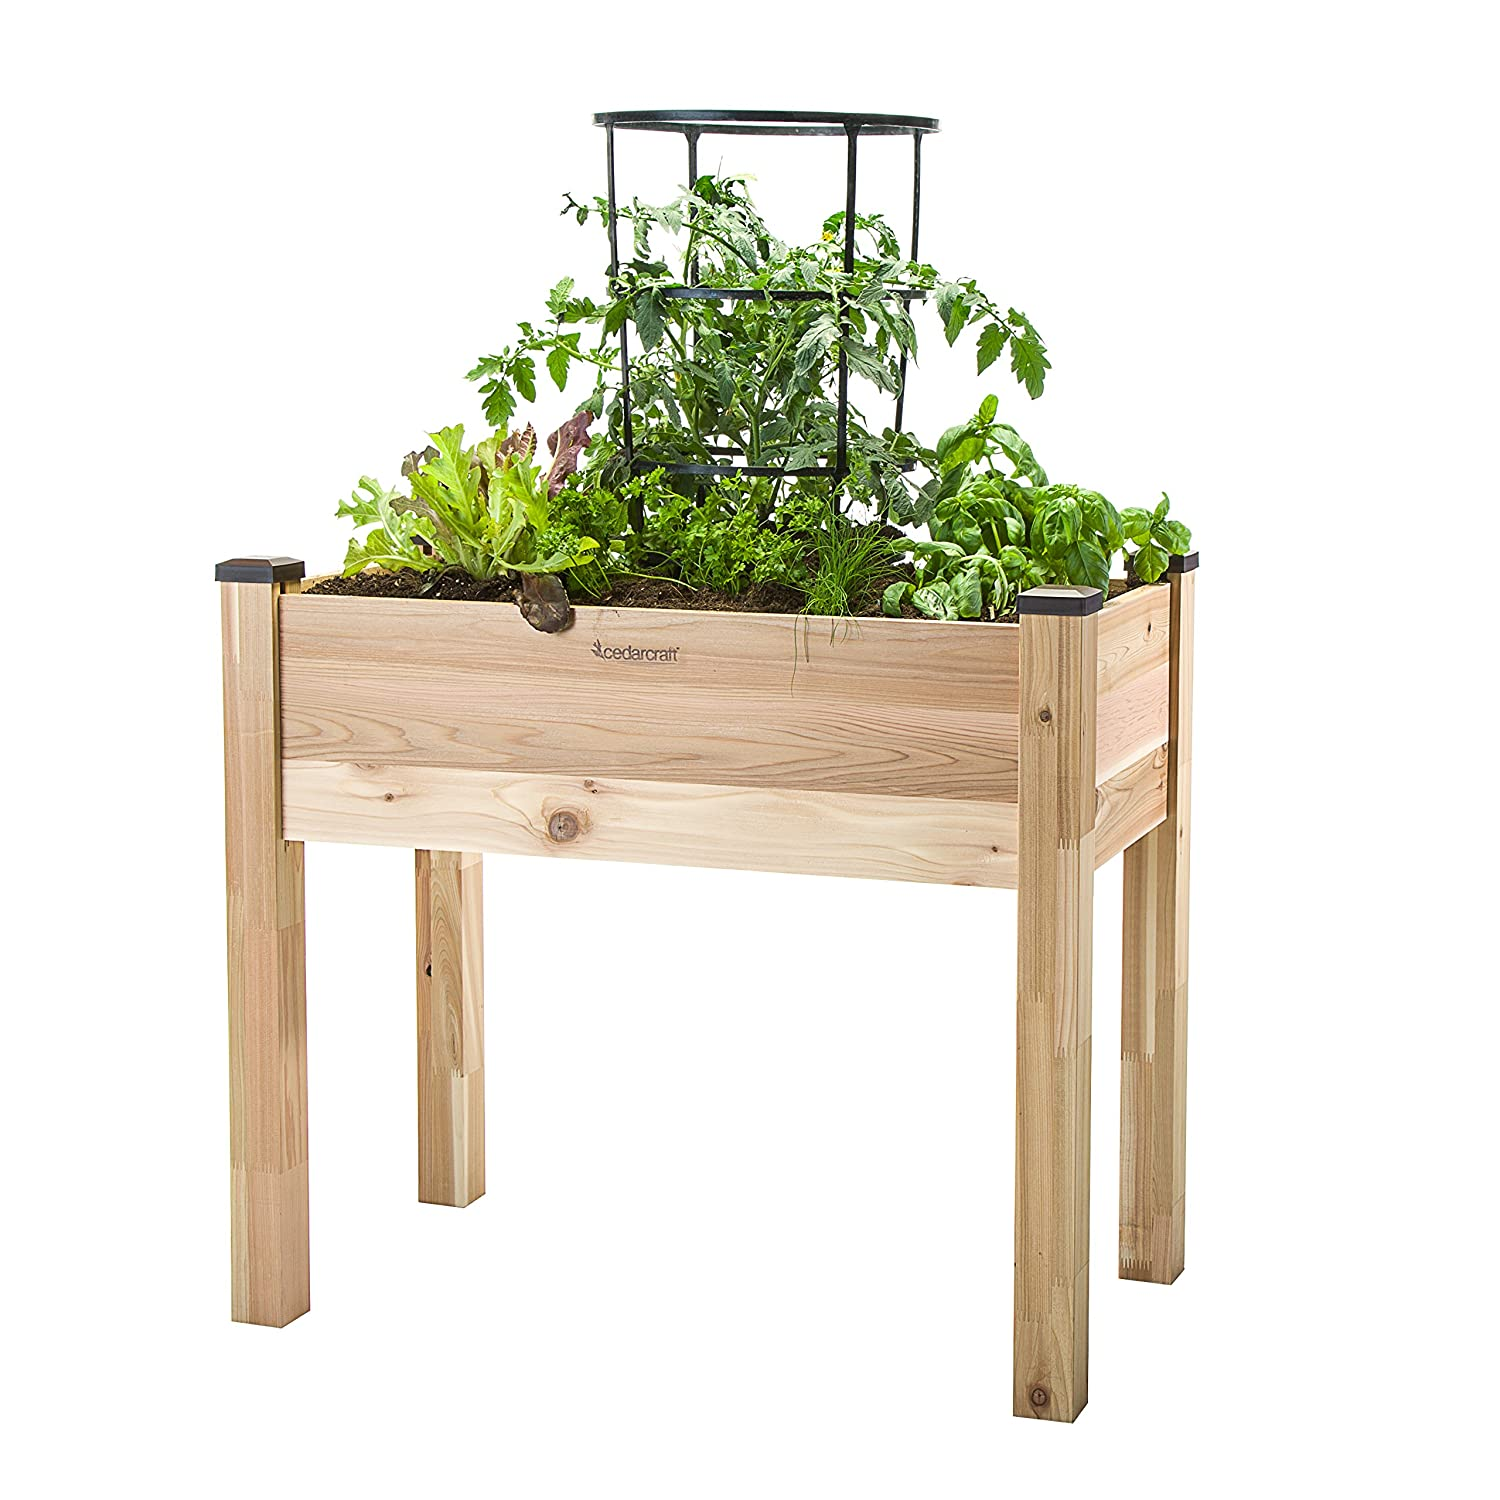 CedarCraft Elevated Cedar Planter 18 x 34 x 30 – Grow Fresh Vegetables, Herb Gardens, Flowers Succulents. Beautiful Raised Garden Bed for a Deck, Patio or Yard Gardening. No Tools Required.